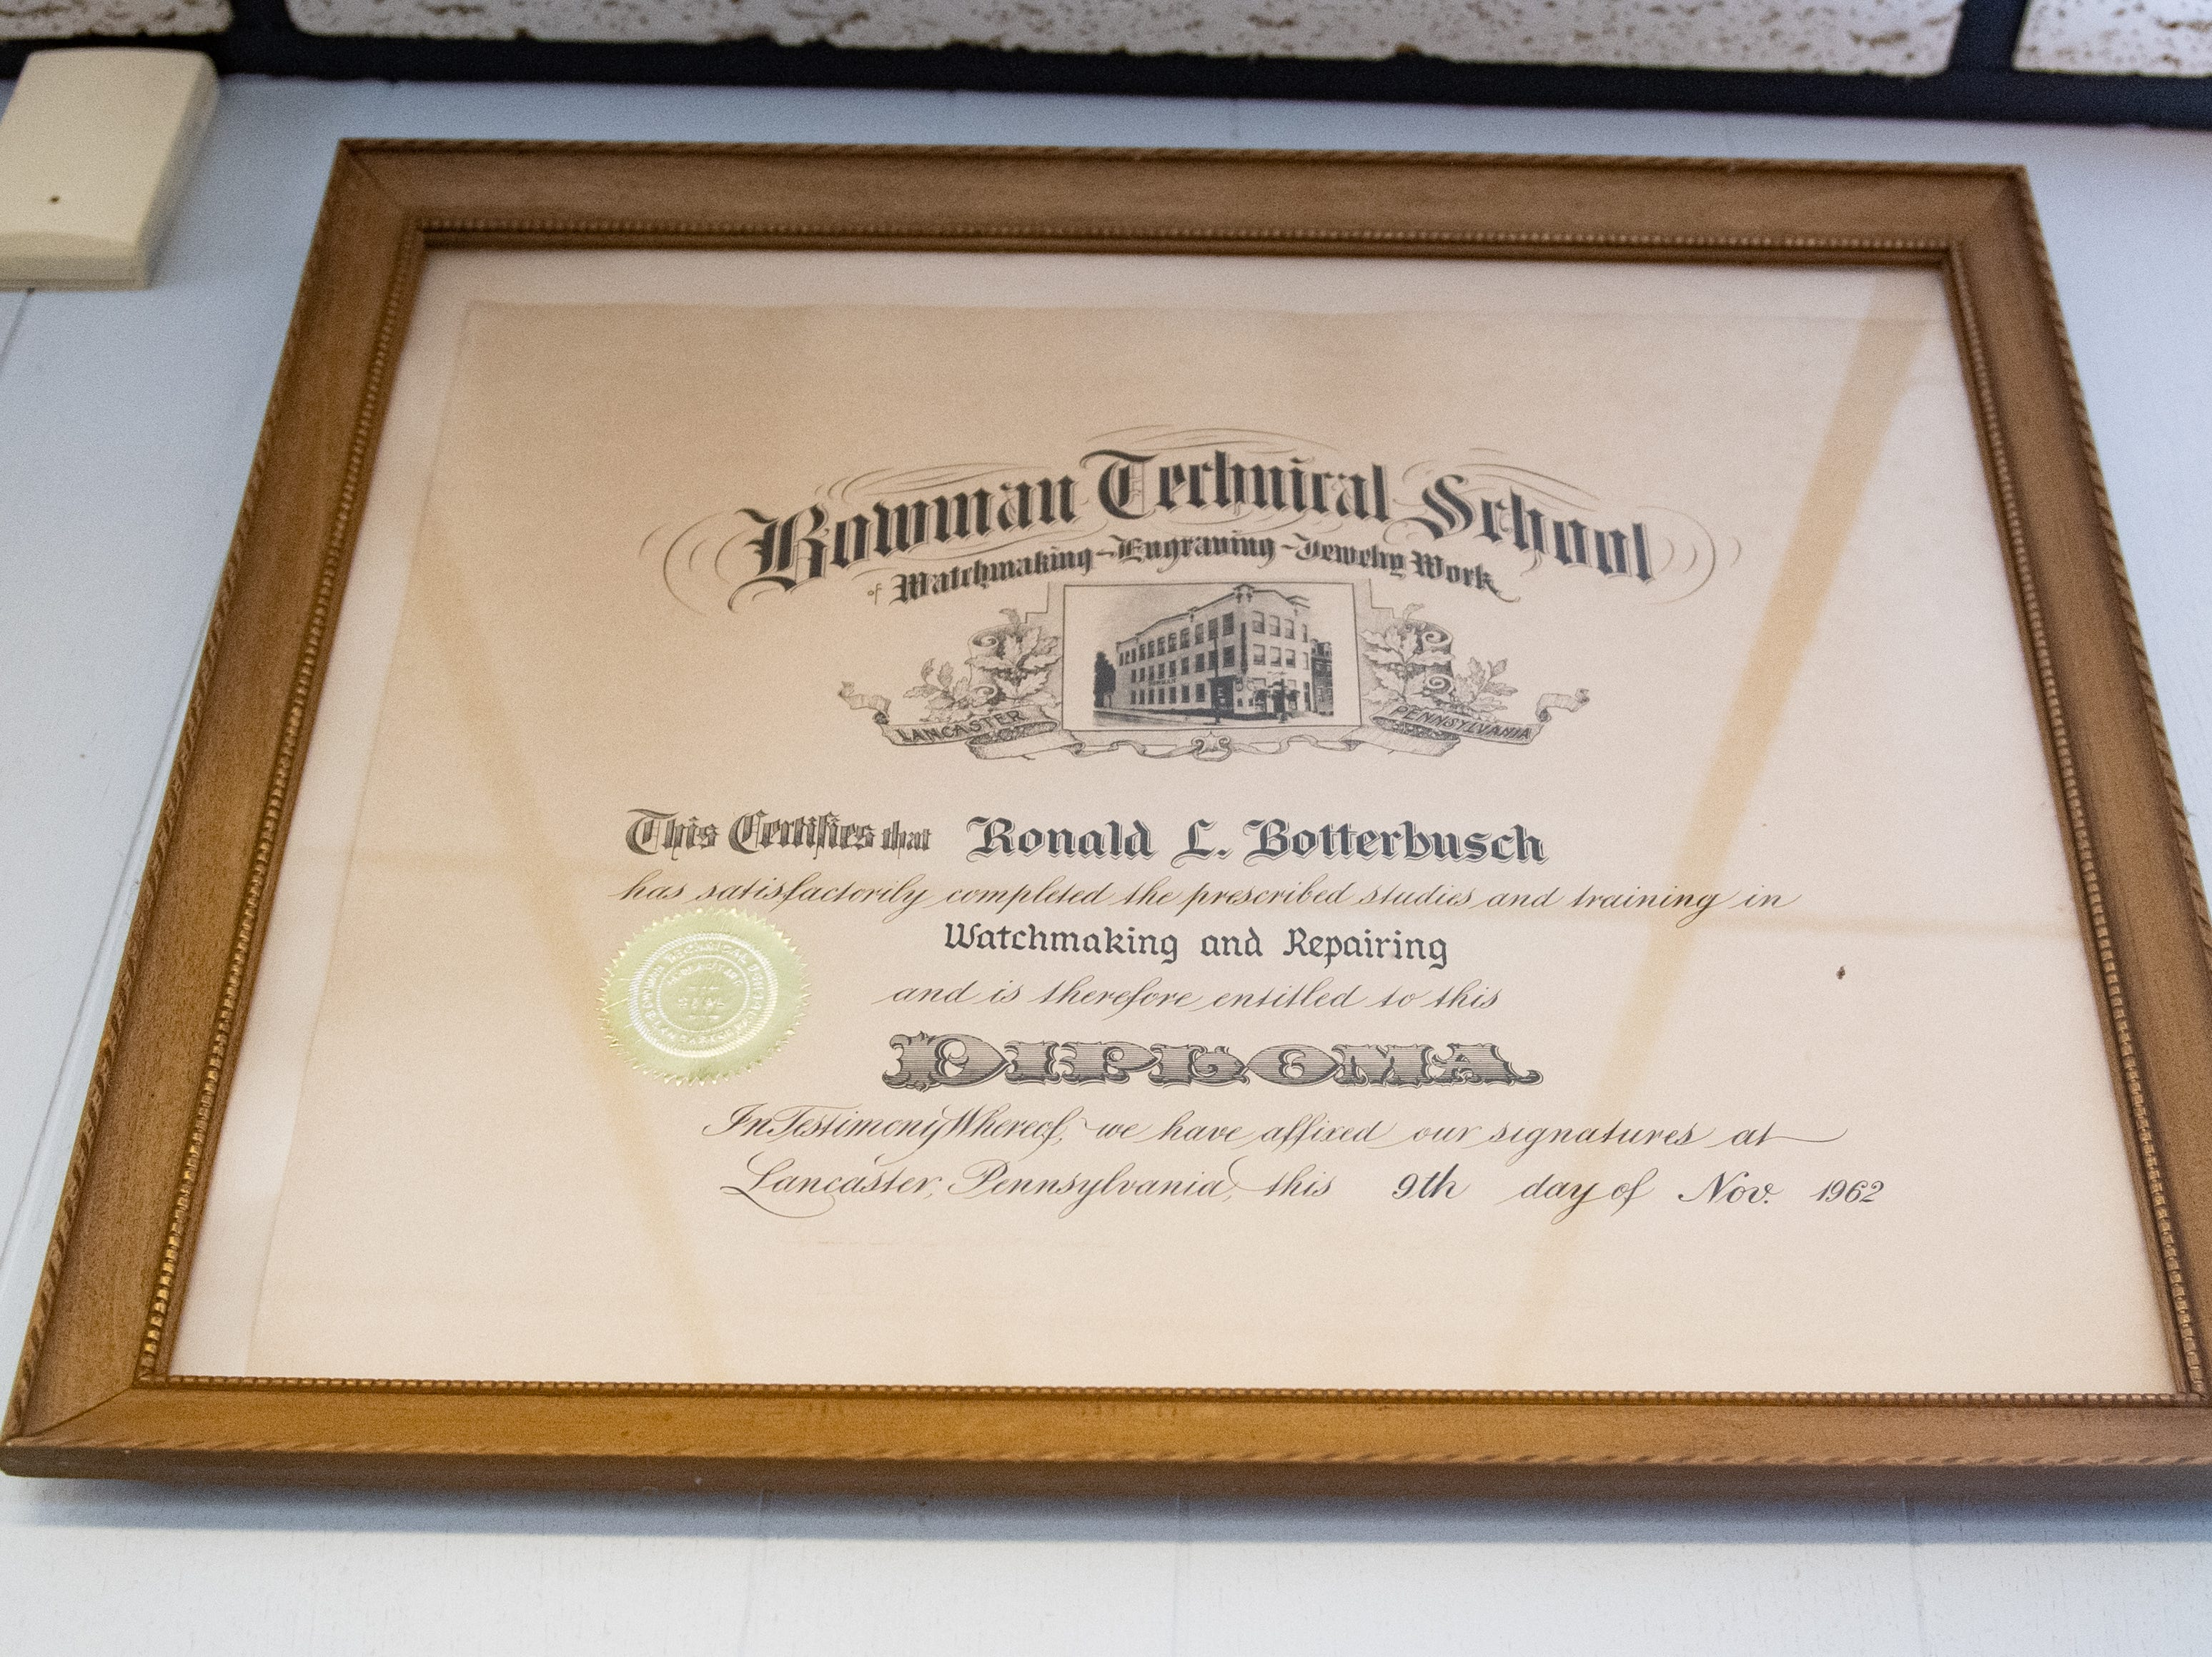 Ronald Botterbusch's watchmaker school diploma hangs in the front of the store, January 30, 2019.